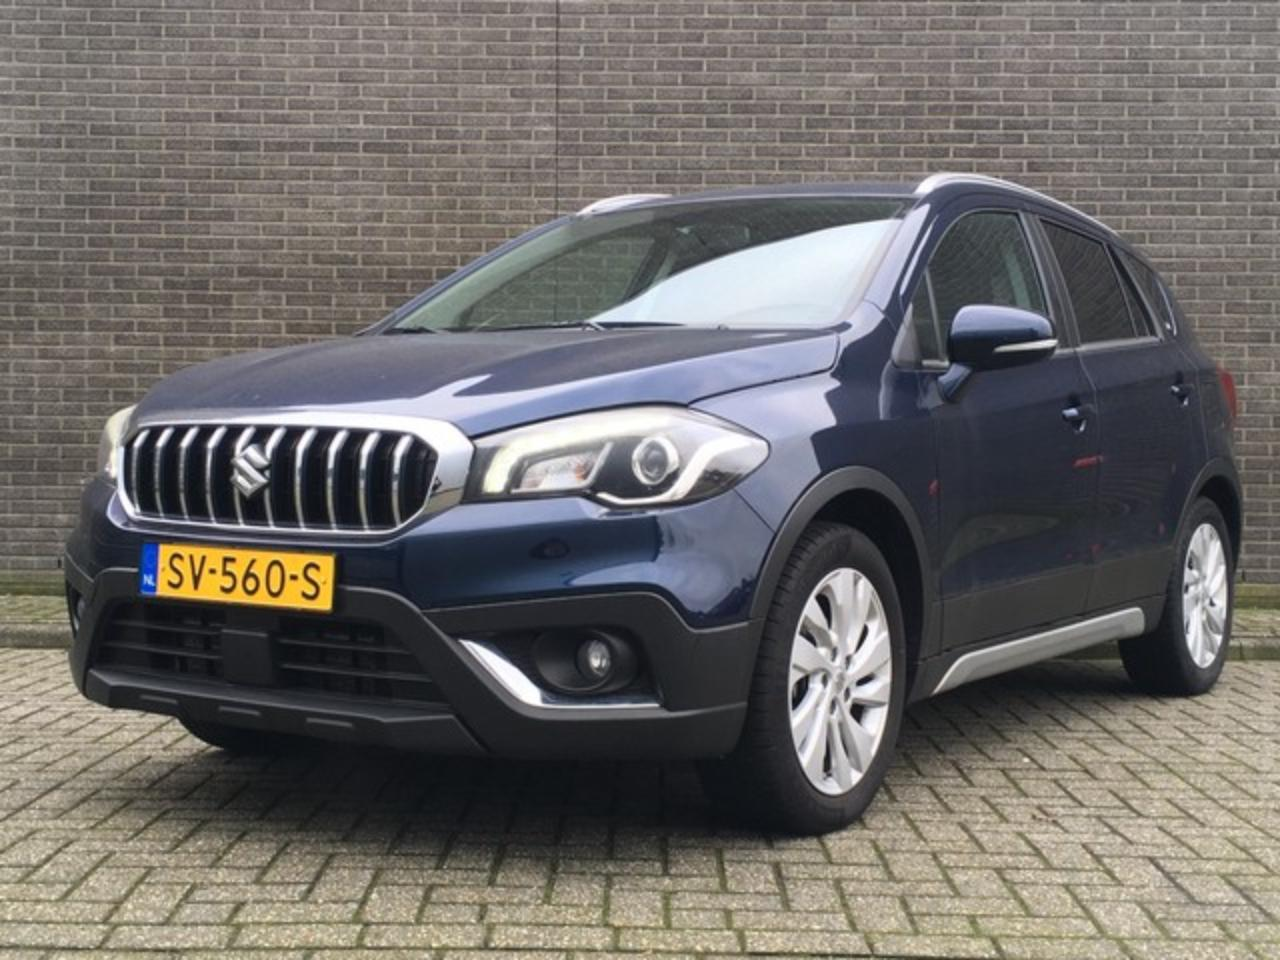 Suzuki S-Cross 1.0 Exclusive Navigatie, Camera